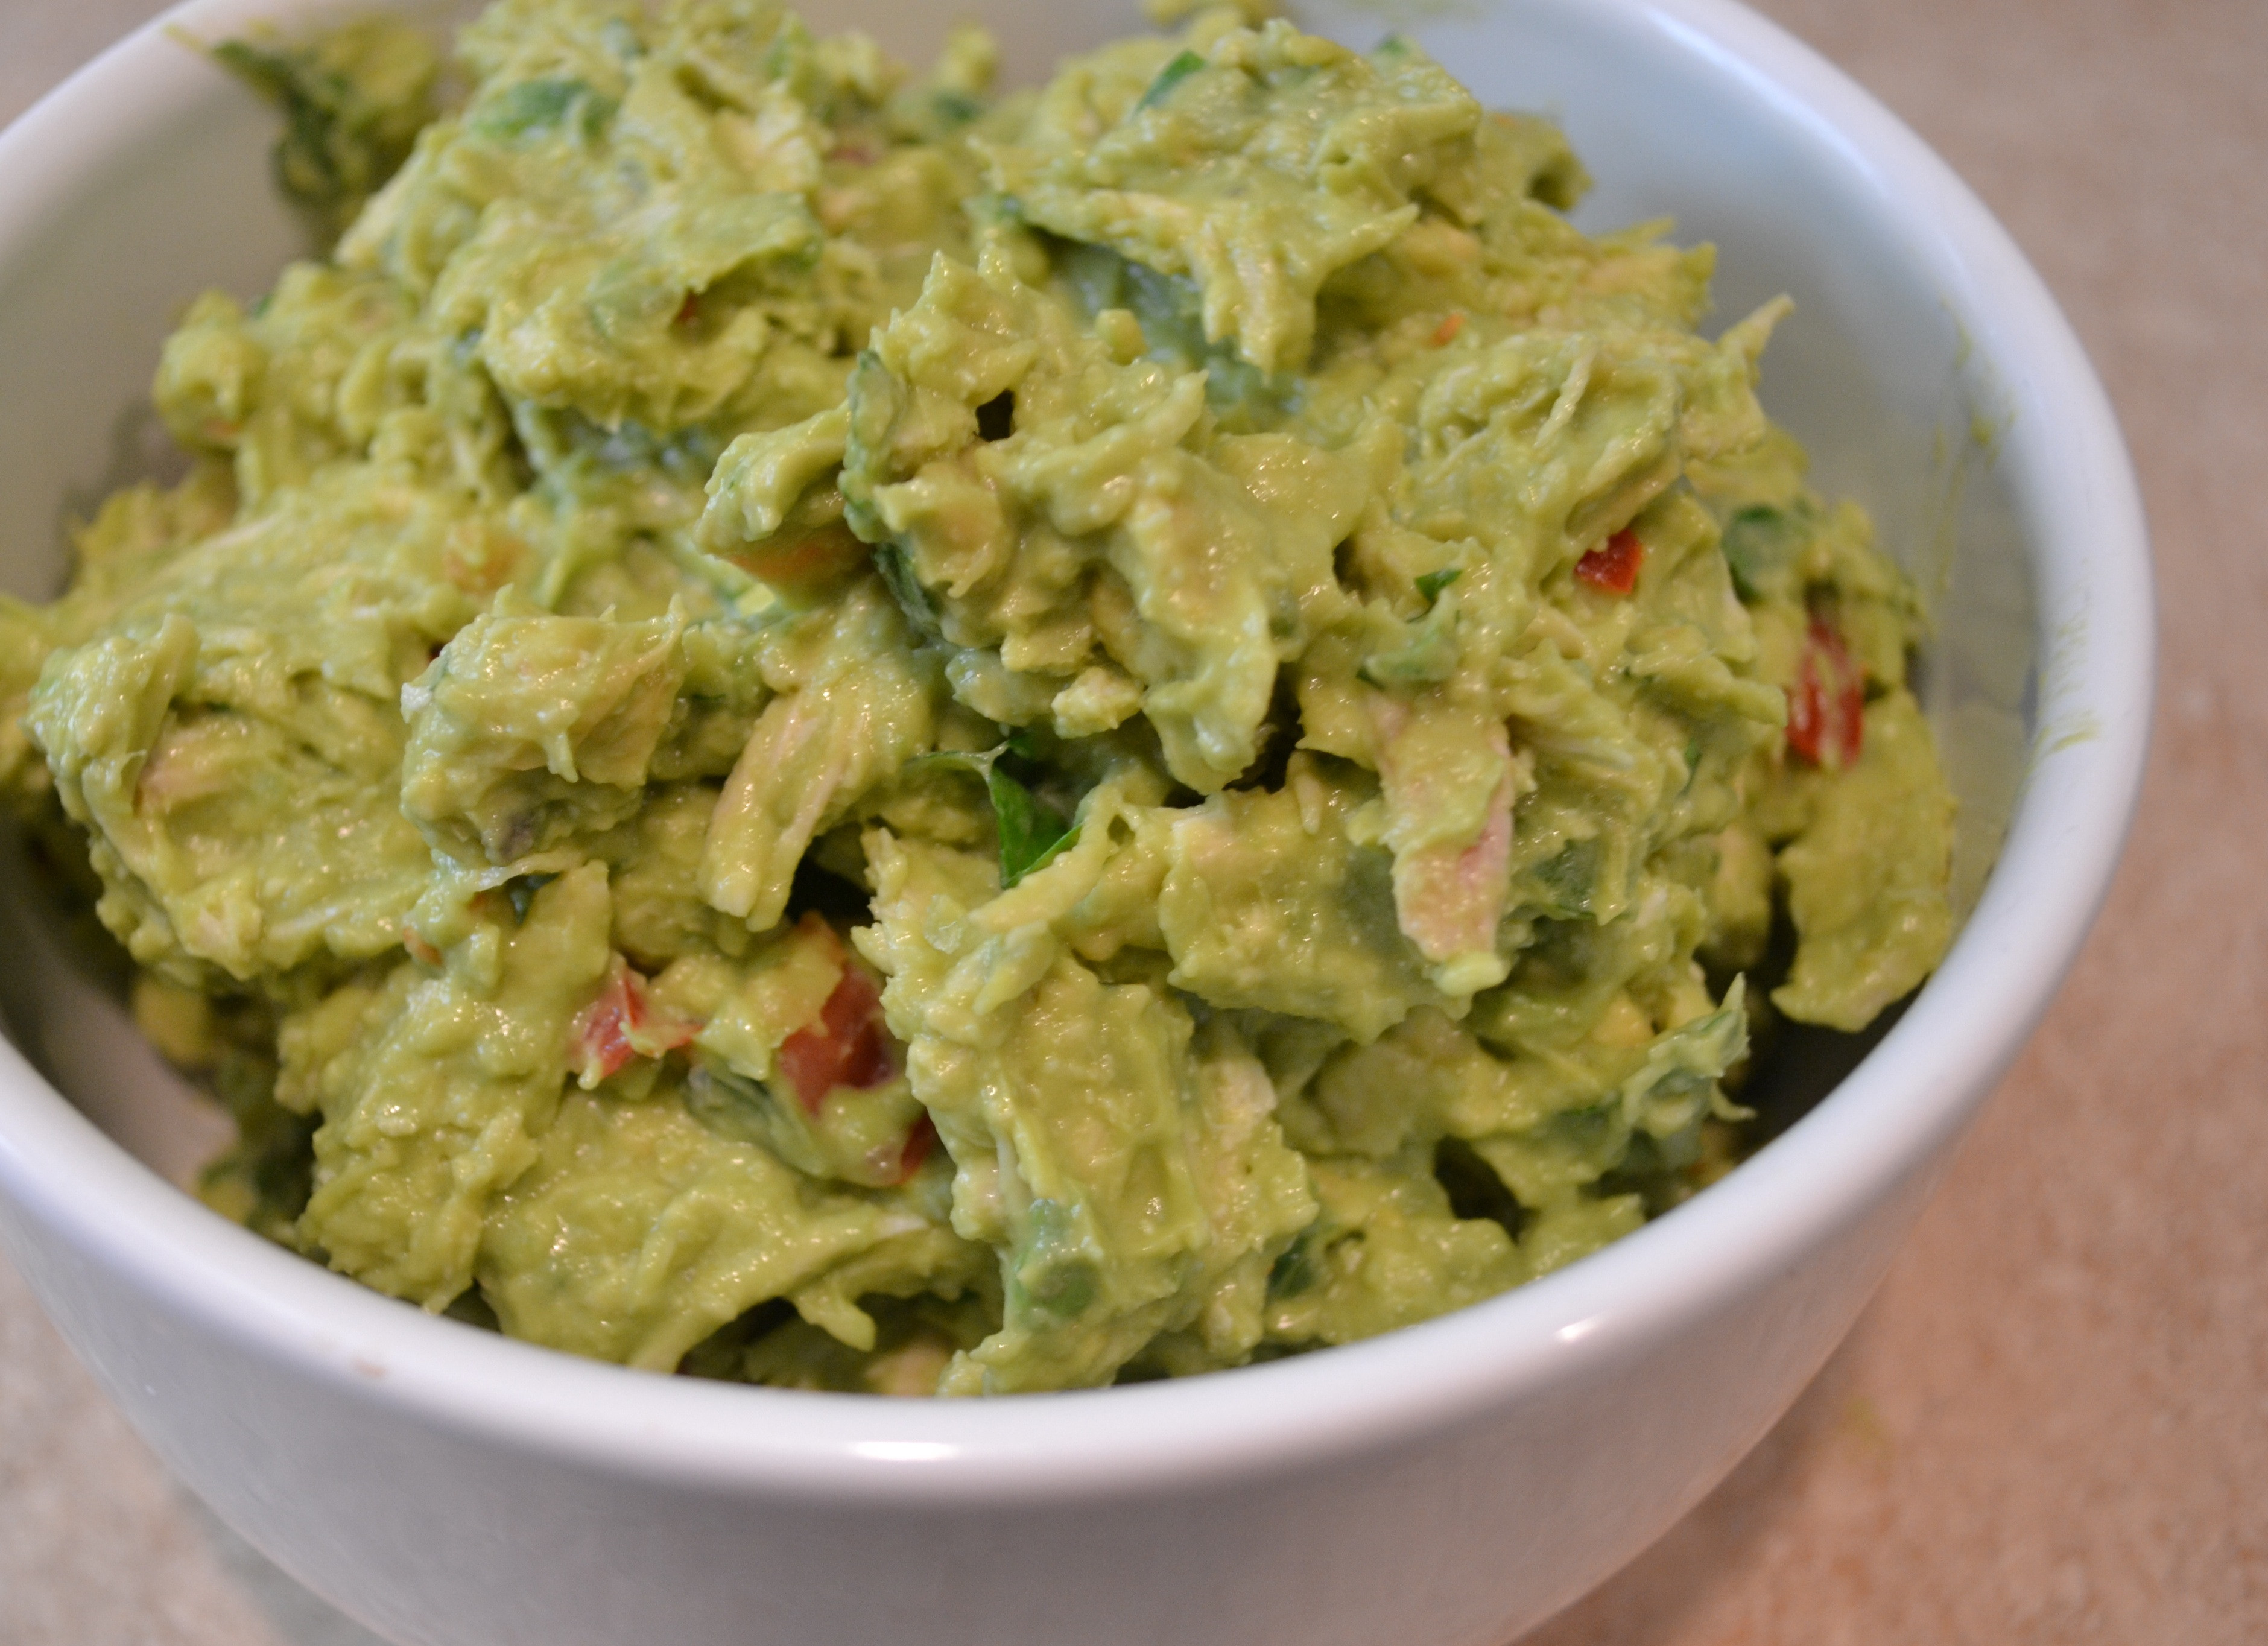 Healthy Chicken And Avocado Recipes  Avocado Chicken Salad The Four Percent